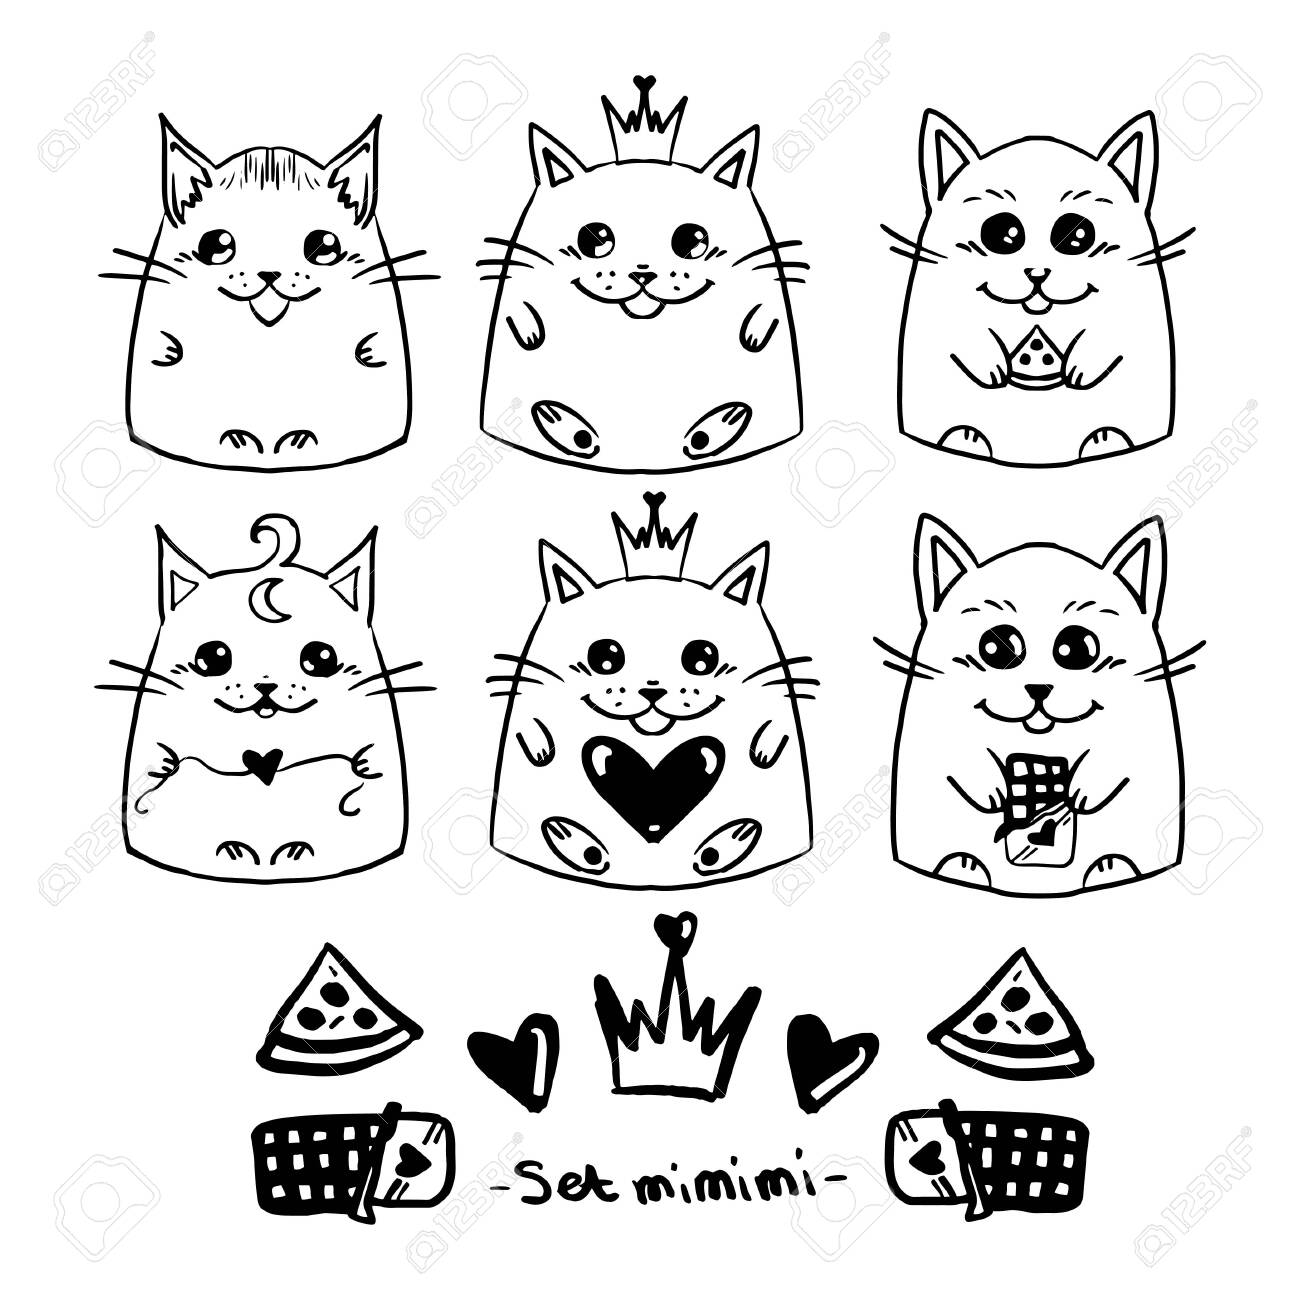 Set Cute Cats In Hand Drawn Style Girl Children Vector Doodle Royalty Free Cliparts Vectors And Stock Illustration Image 127142927